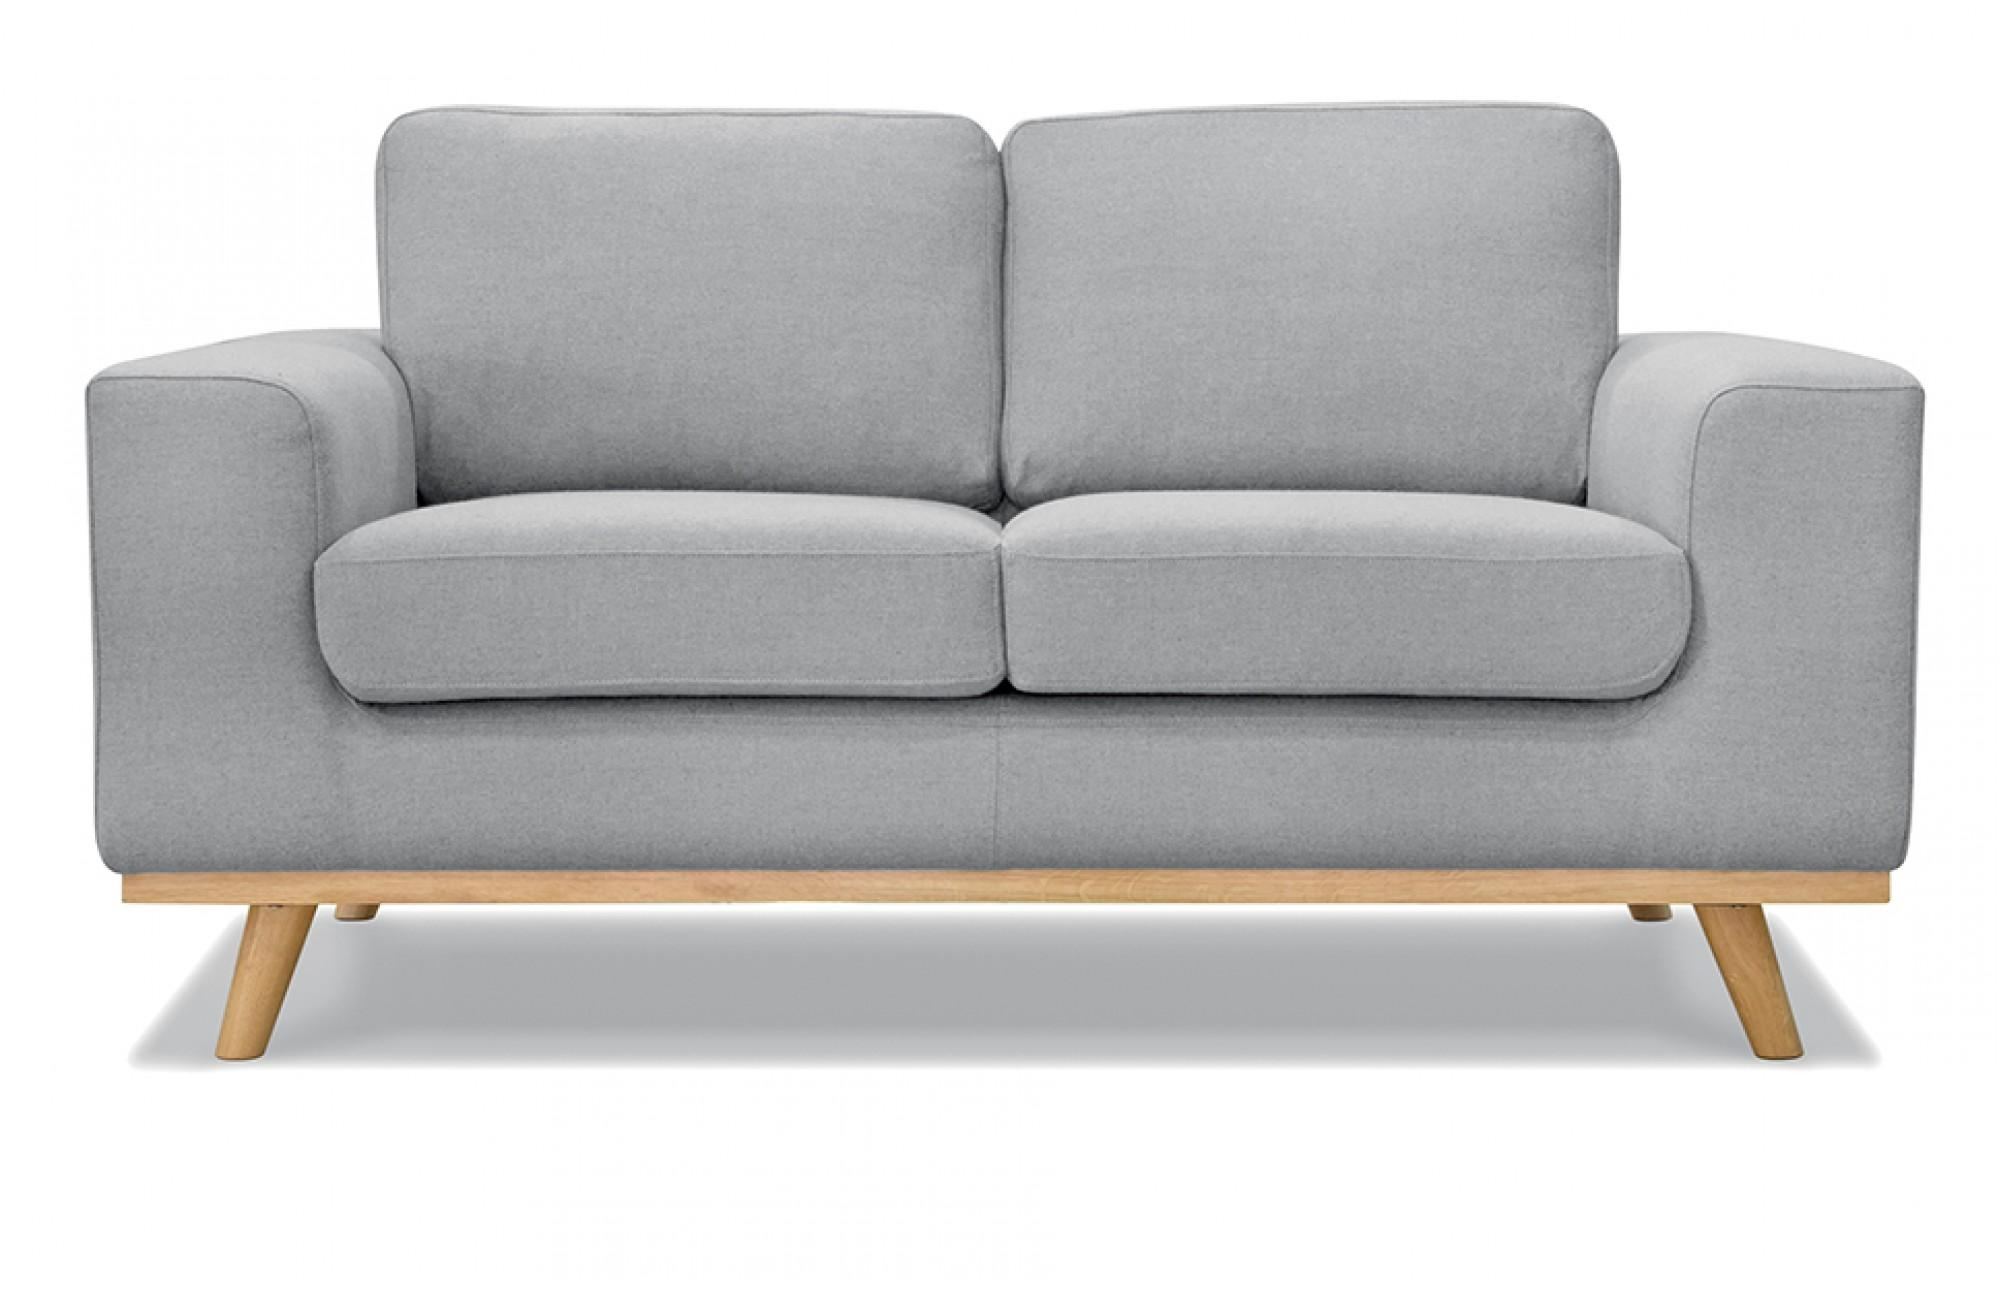 Olivia 2 Seater Sofa In Grey Out And Out Original Inside Two Seater Sofas (View 19 of 20)